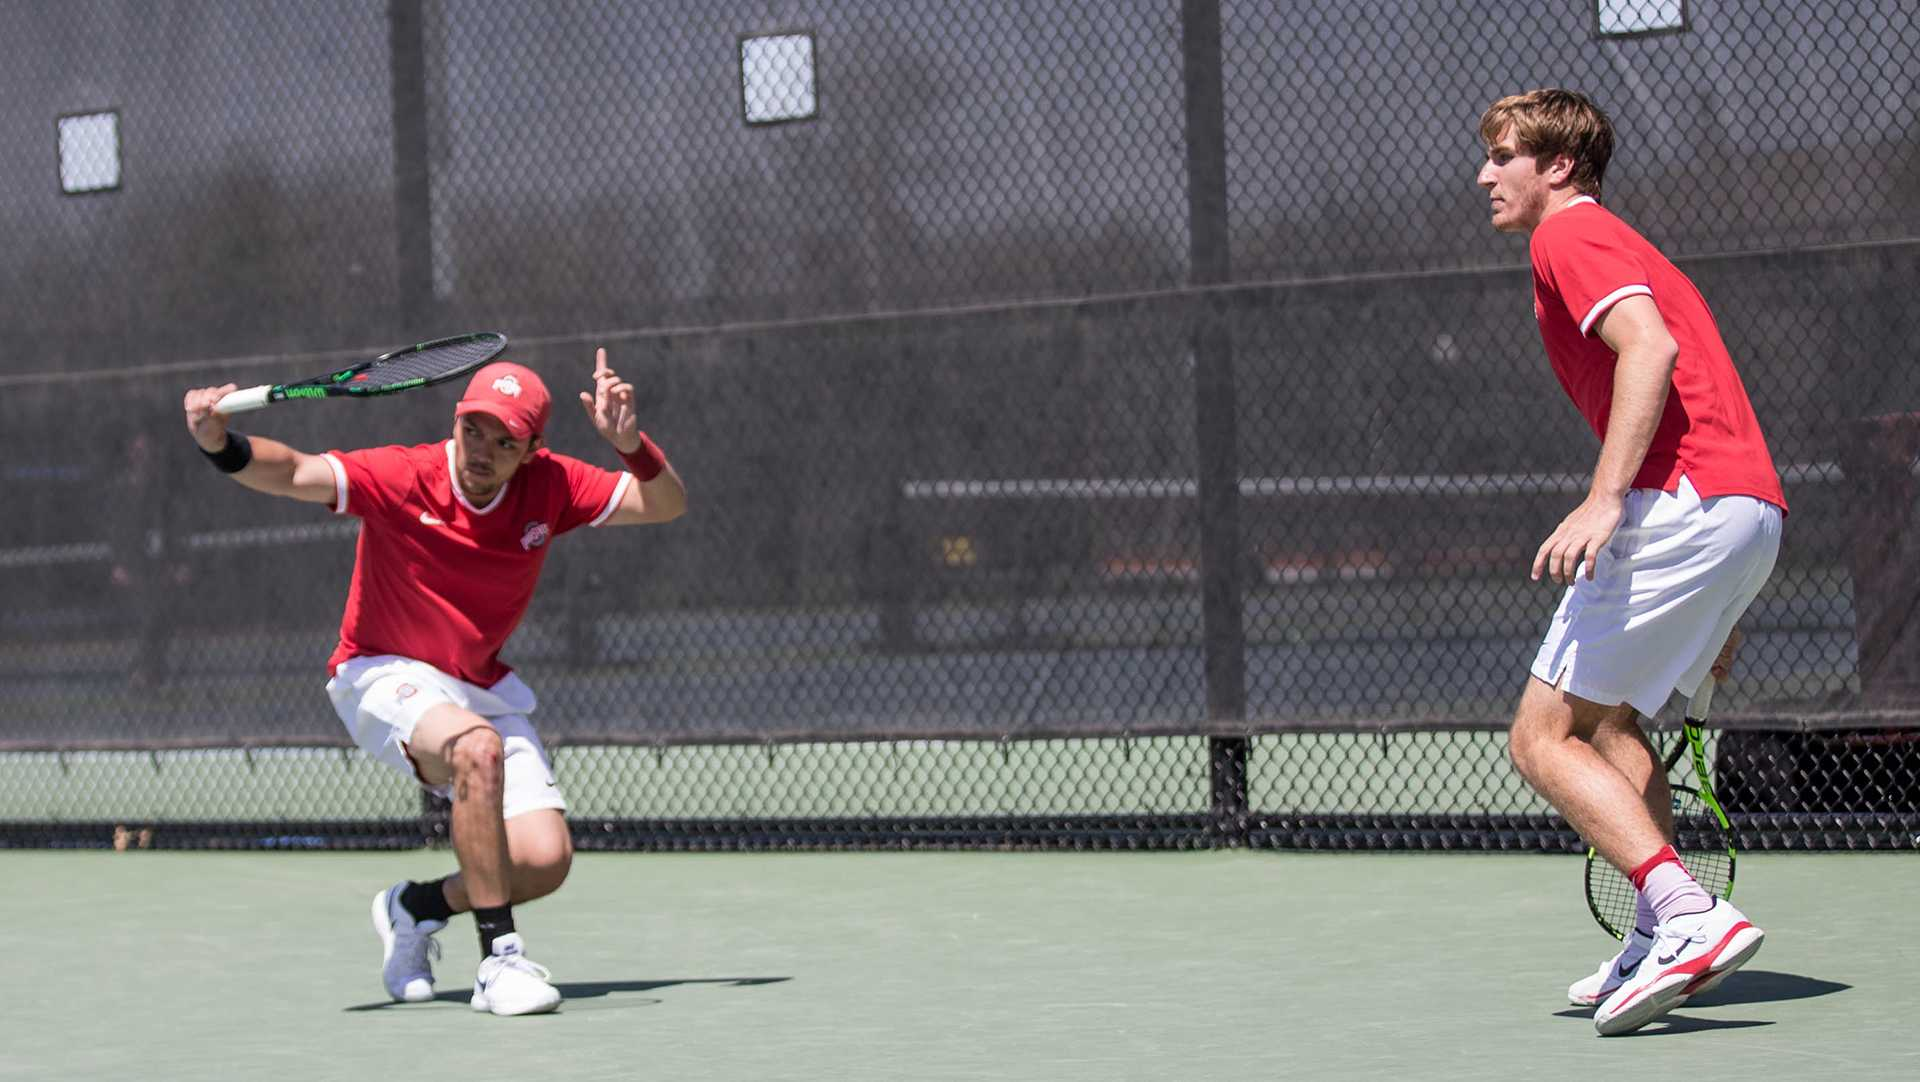 Photos: Big Ten men's tennis conference final